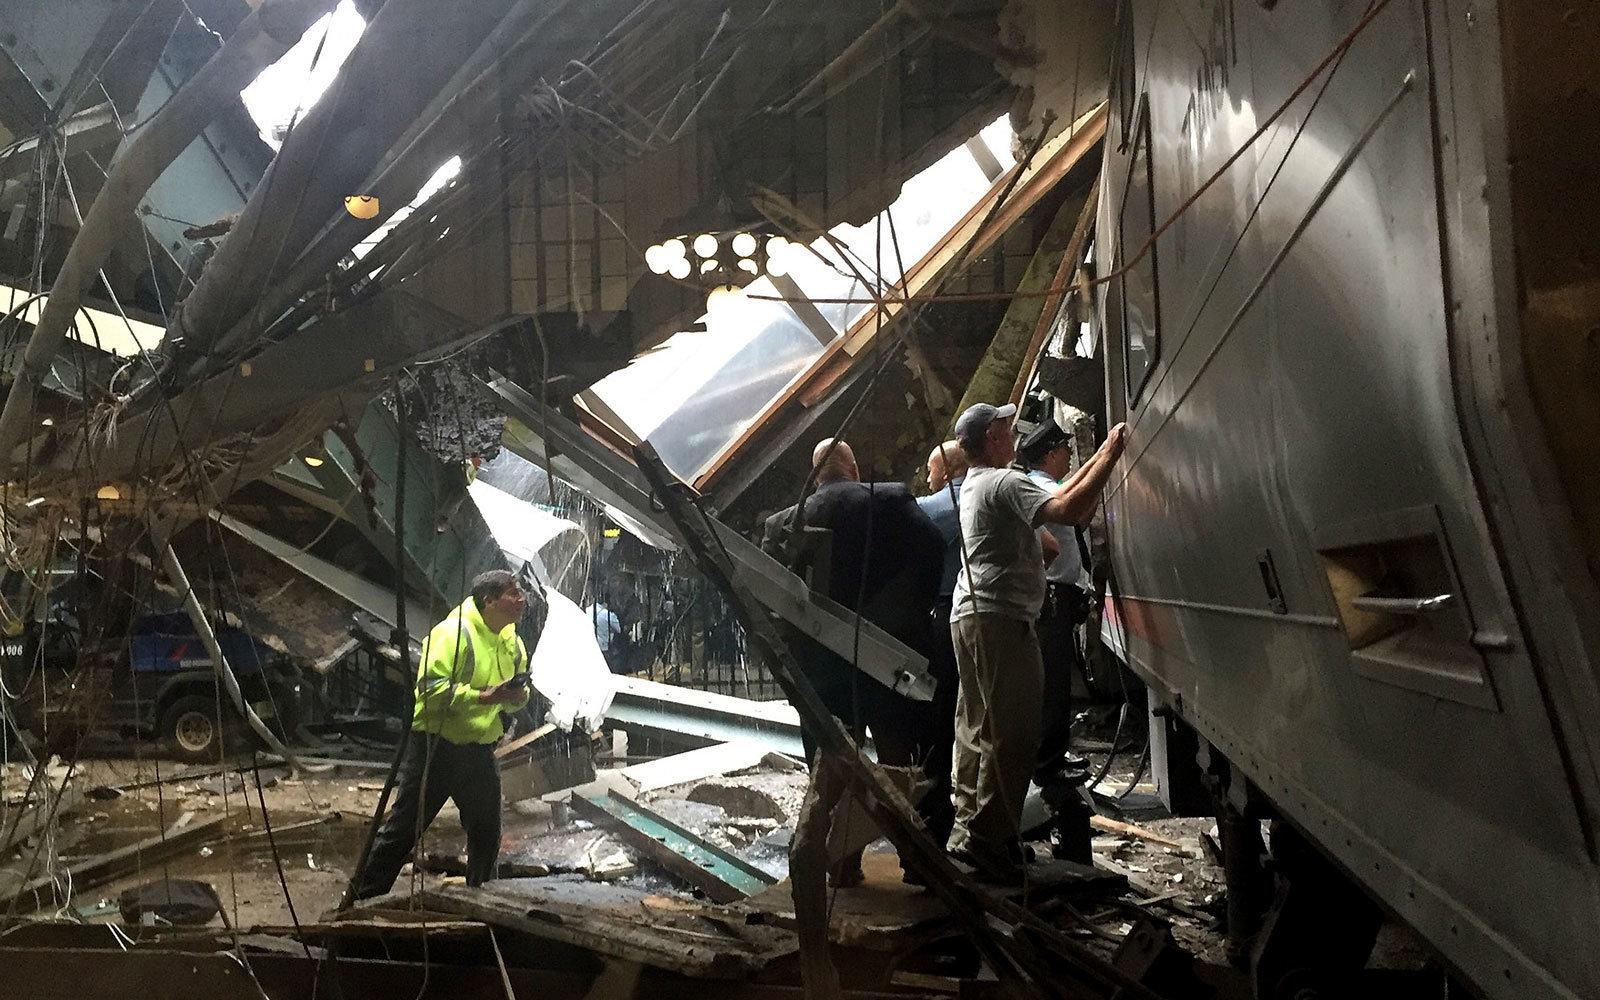 Train crash in Hoboken, Sept. 29, 2016.